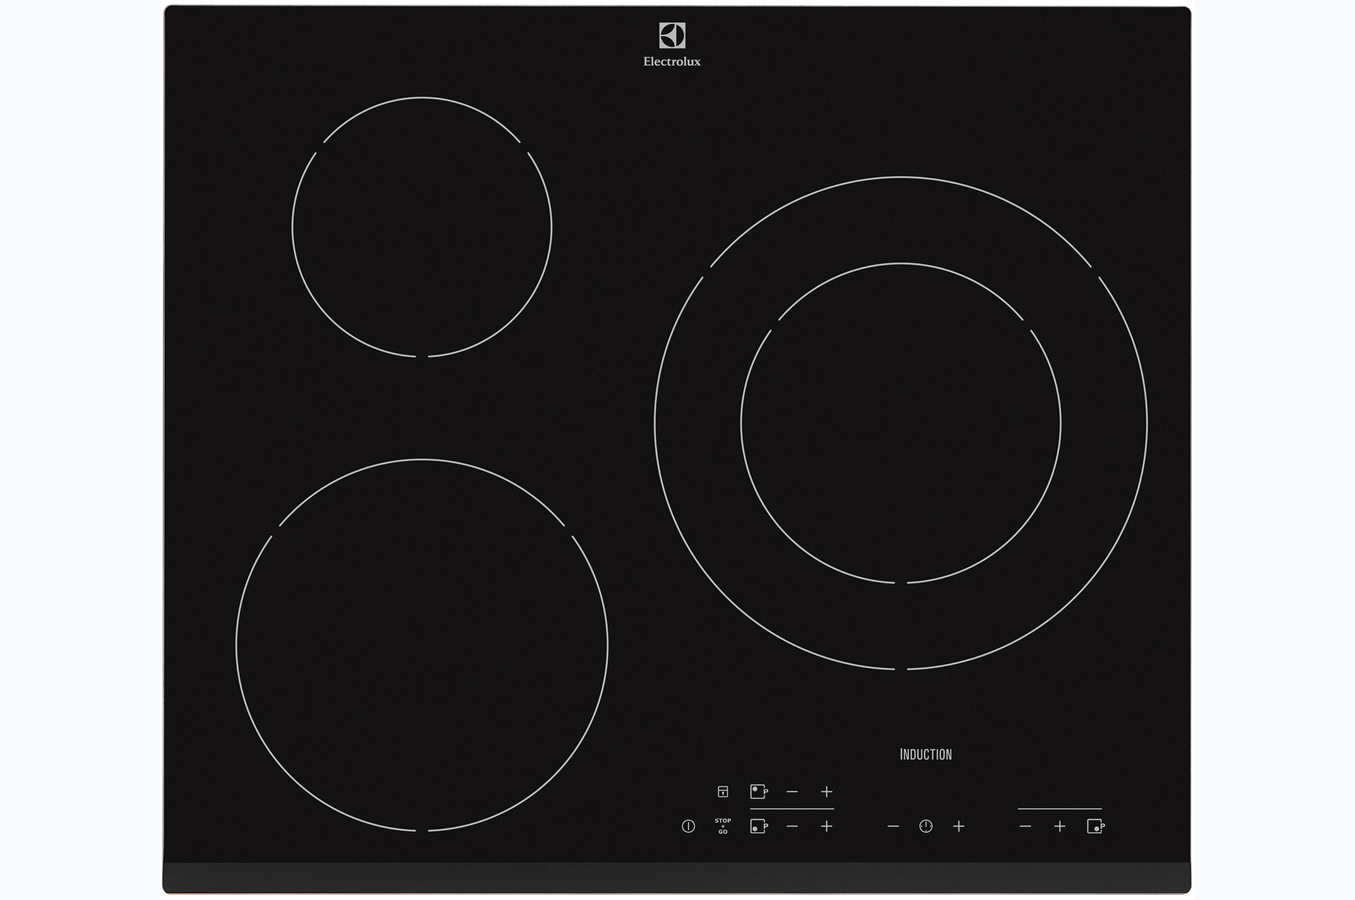 Plaque induction electrolux e6223hfk 3851494 darty - Comment nettoyer une plaque induction ...